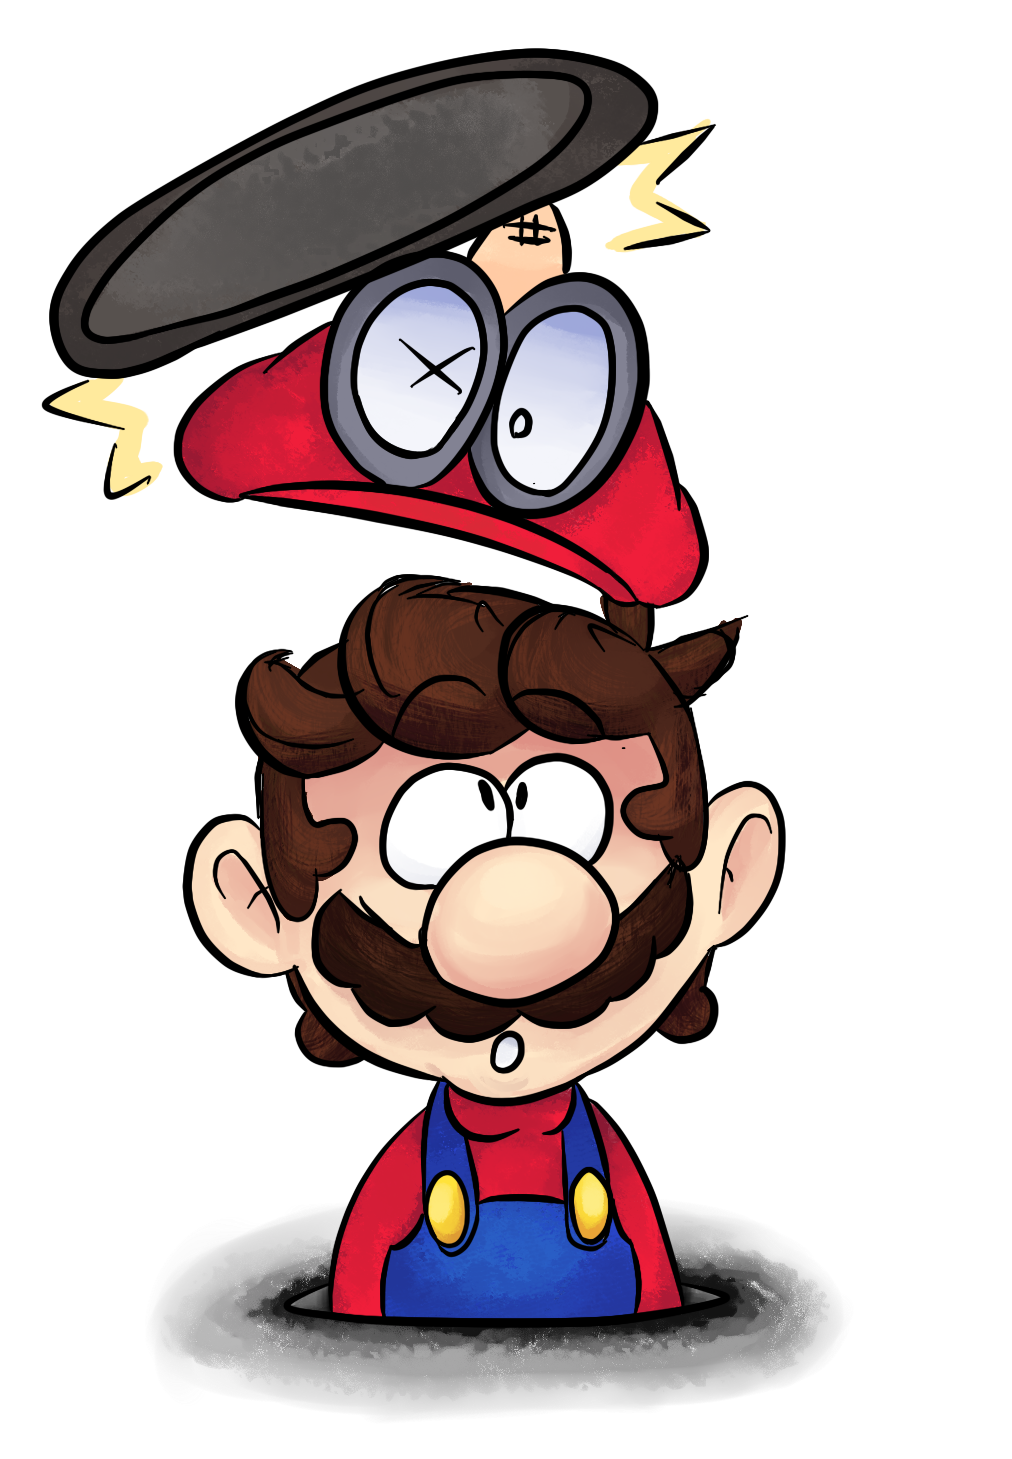 Super mario odyssey by toonrinkuhd on deviantart for Super mario odyssey paintings